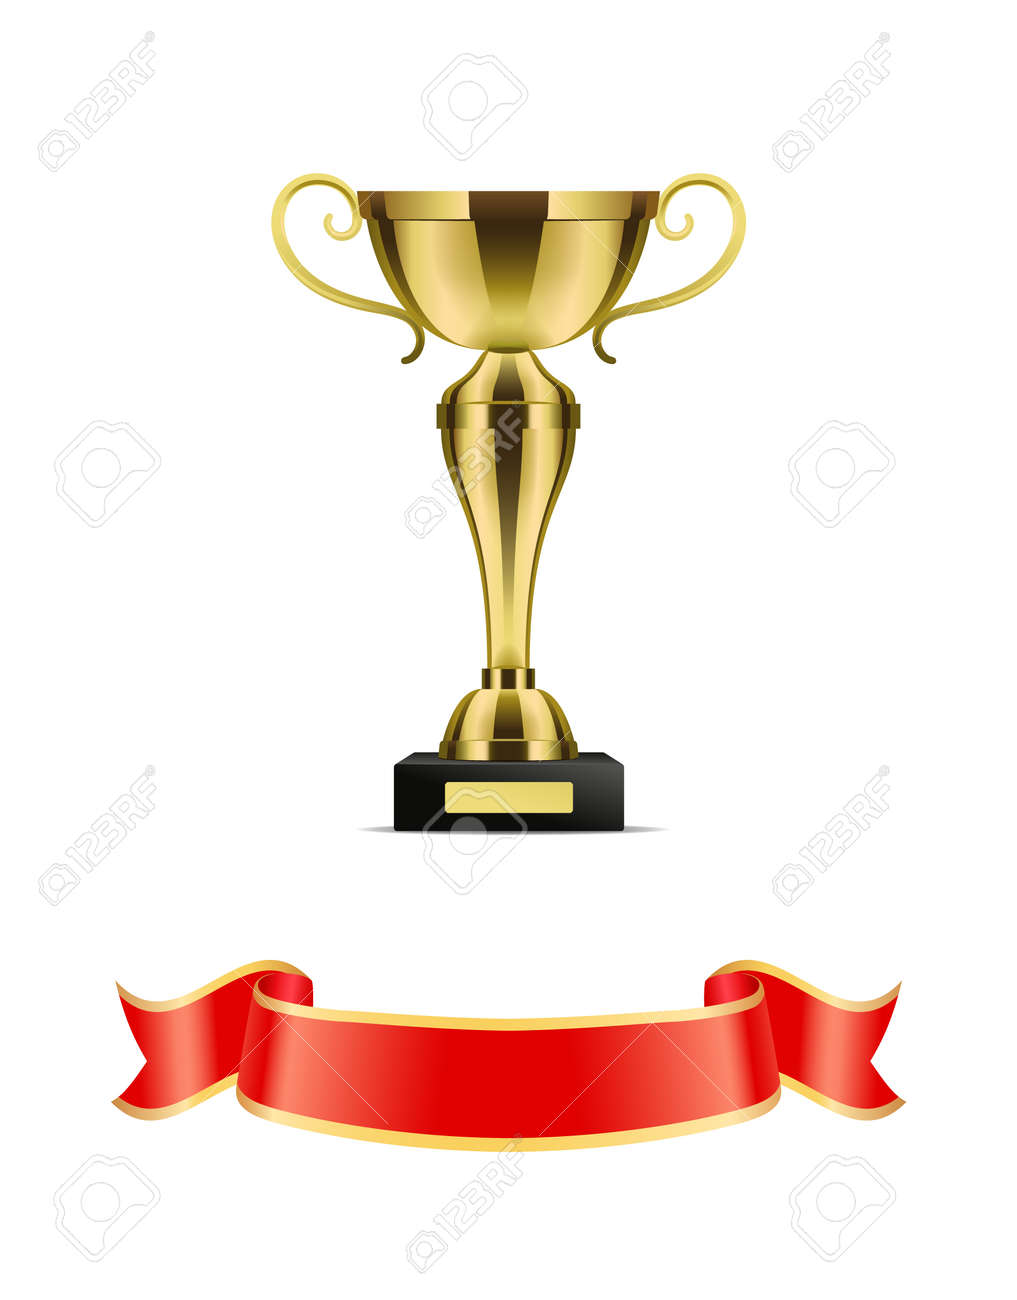 b0cb62eaf Gold trophy cup with red ribbon vector decoration icon. Shiny goblet with  curly handles on